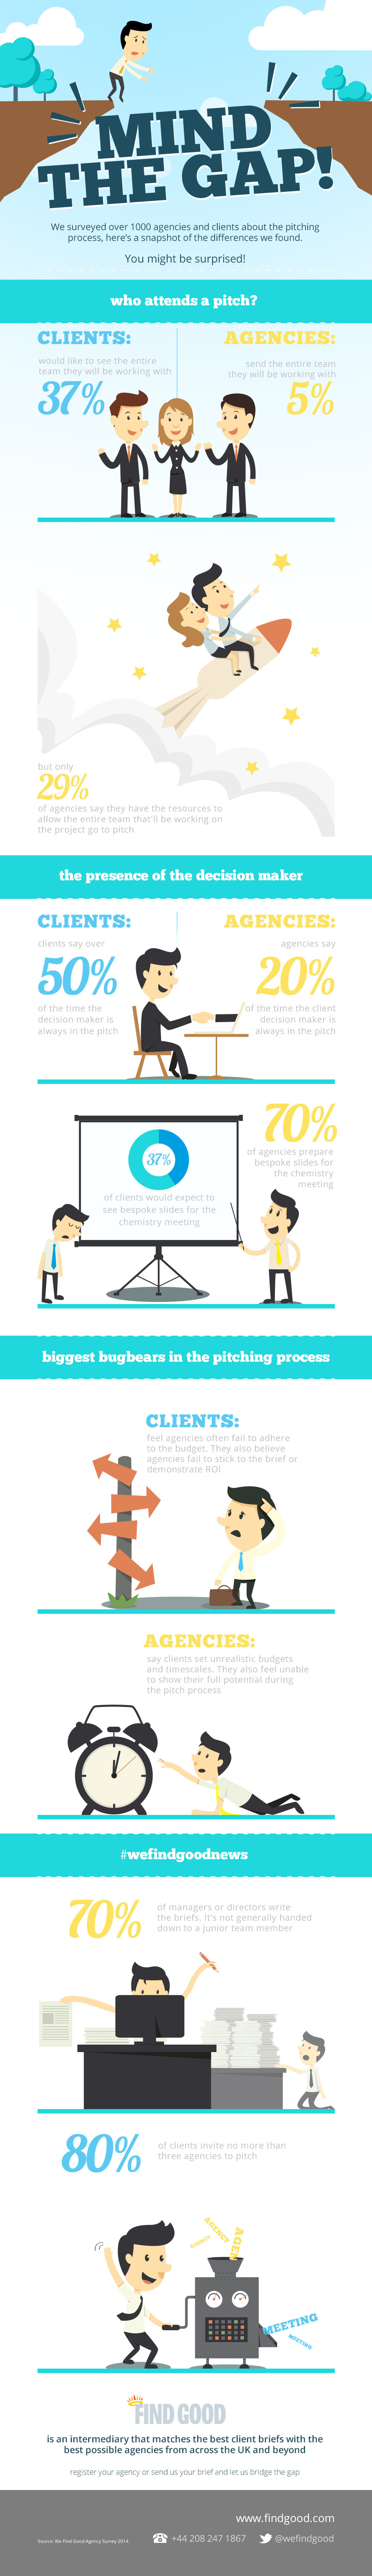 How Clients and Agencies View the Pitching Process [Infographic]